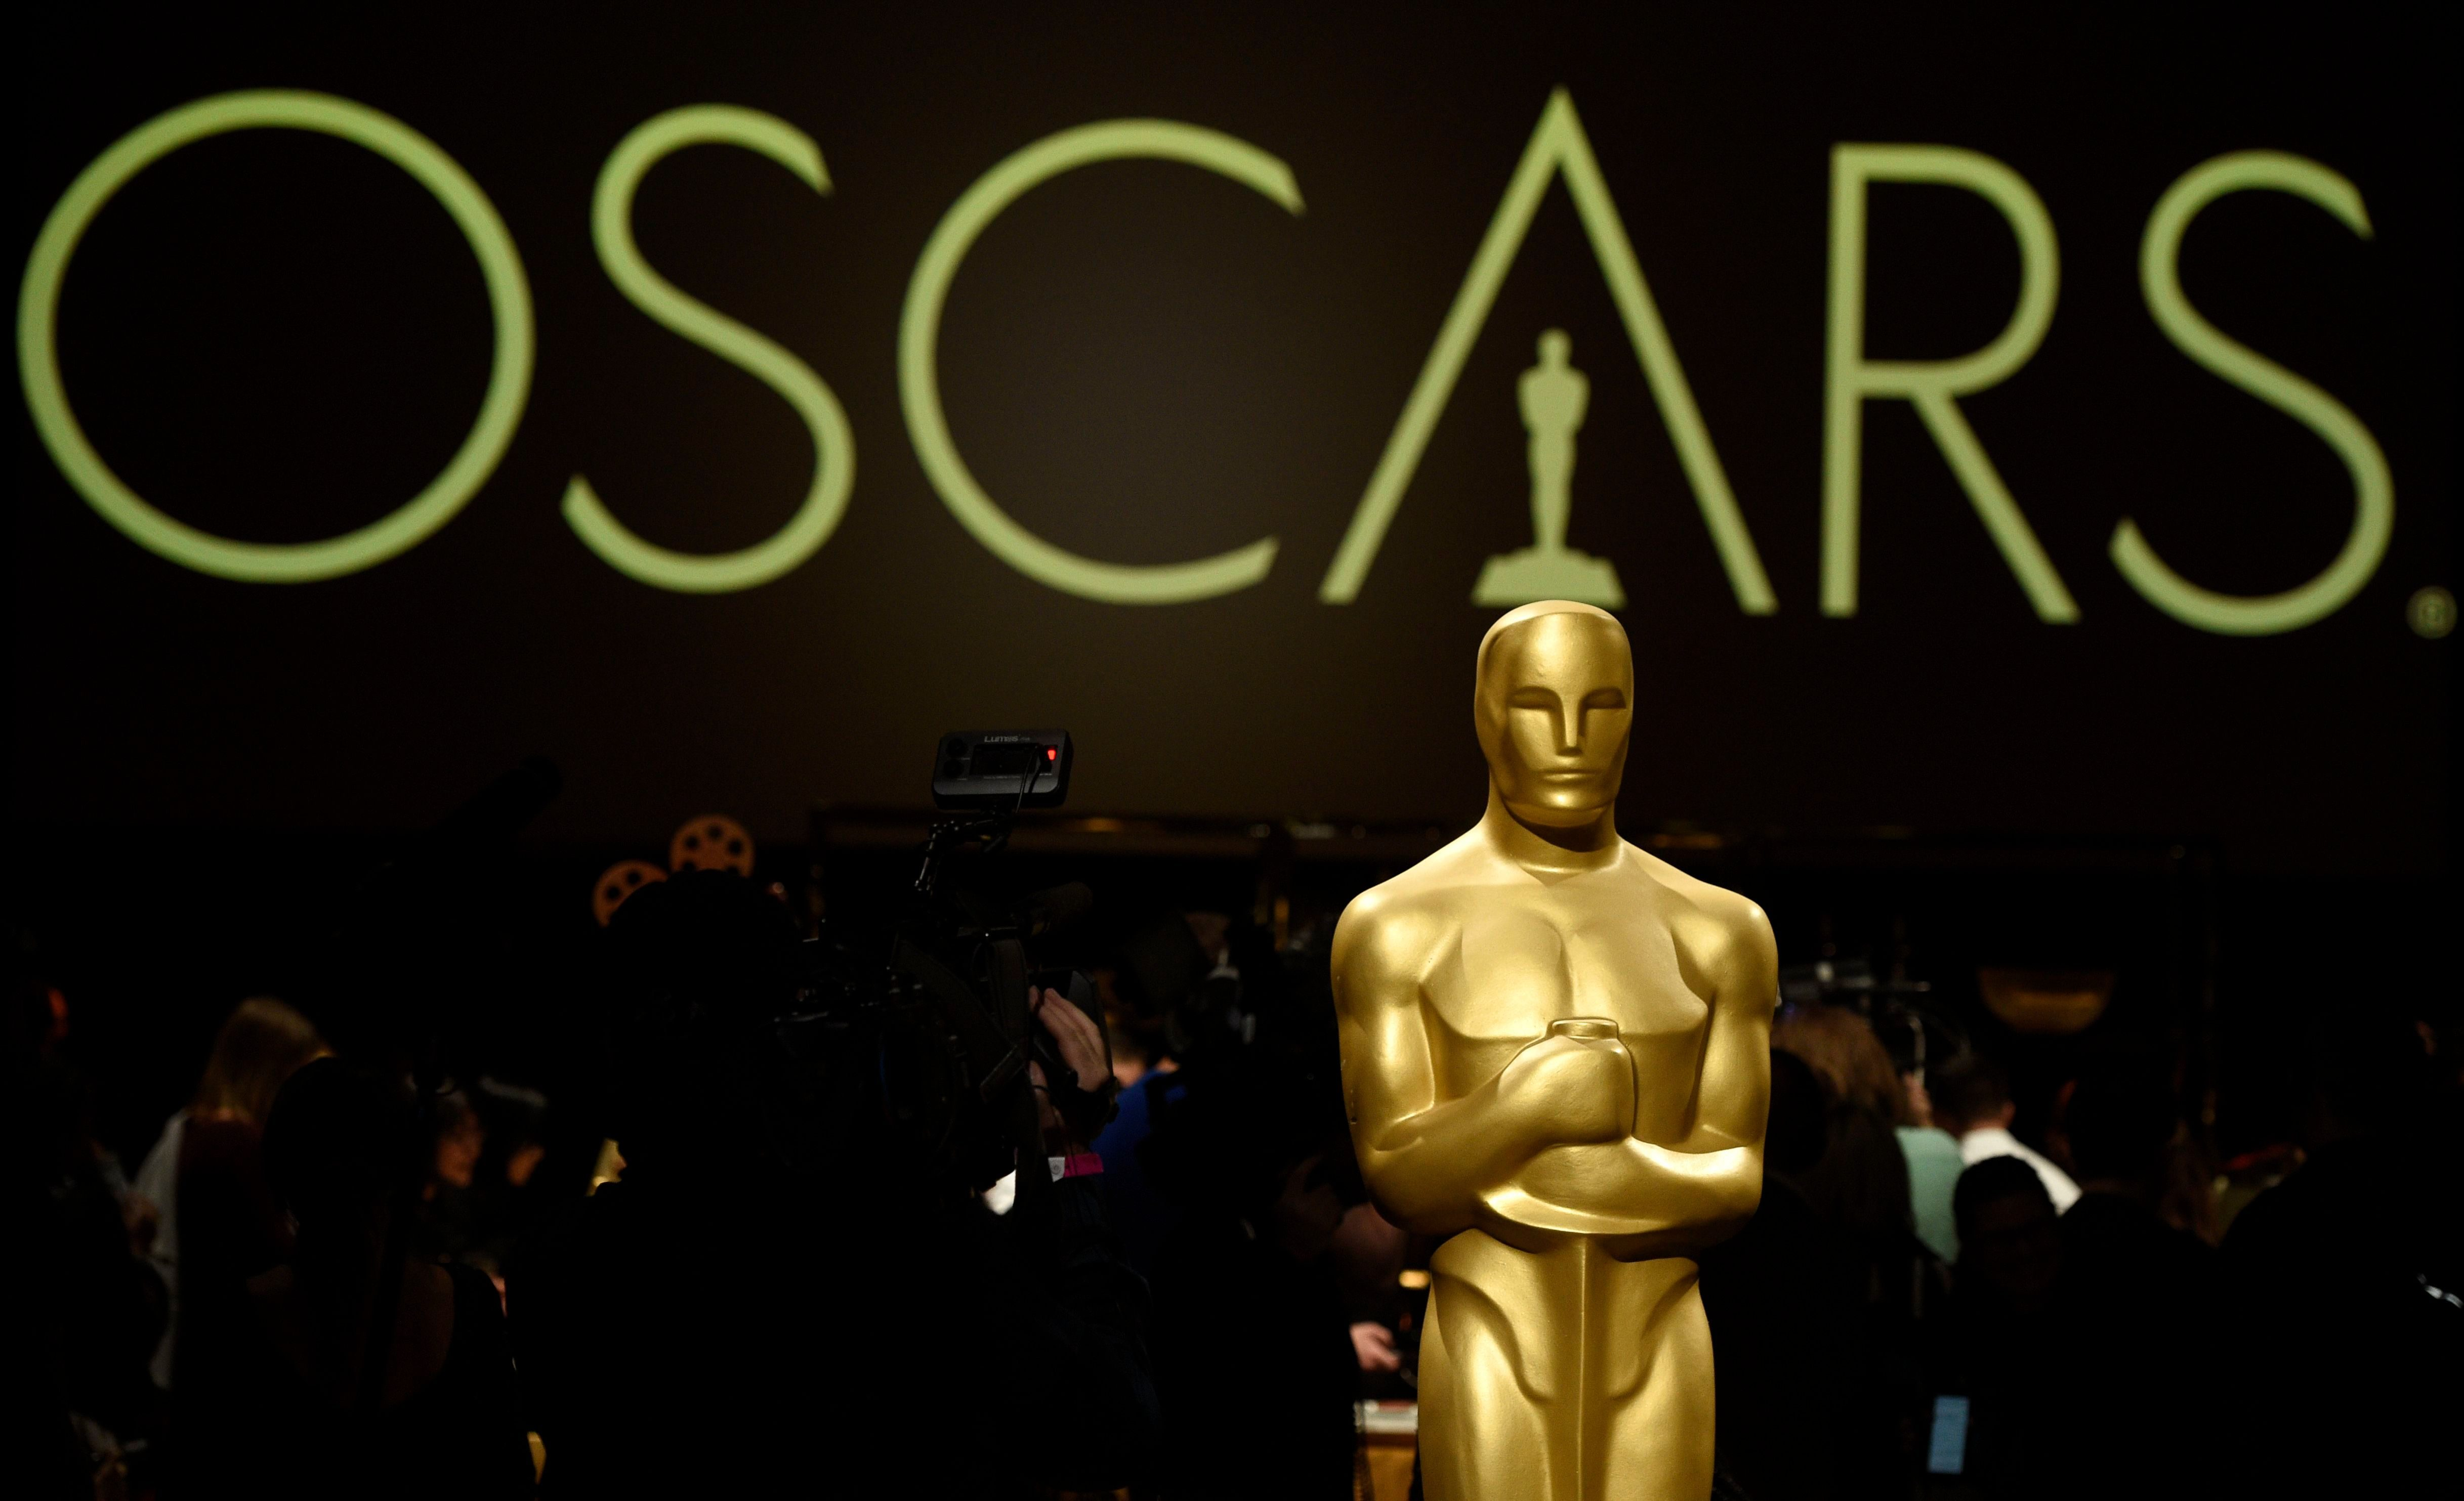 Mandatory Credit: Photo by Chris Pizzello/Invision/AP/Shutterstock (10108210g) An Oscar statue is pictured at the press preview for the 91st Academy Awards Governors Ball, in Los Angeles. The 91st Academy Awards will be held on Sunday, Feb. 24, at the Dolby Theatre in Los Angeles 91st Academy Awards - Governors Ball Press Preview, Los Angeles, USA - 15 Feb 2019